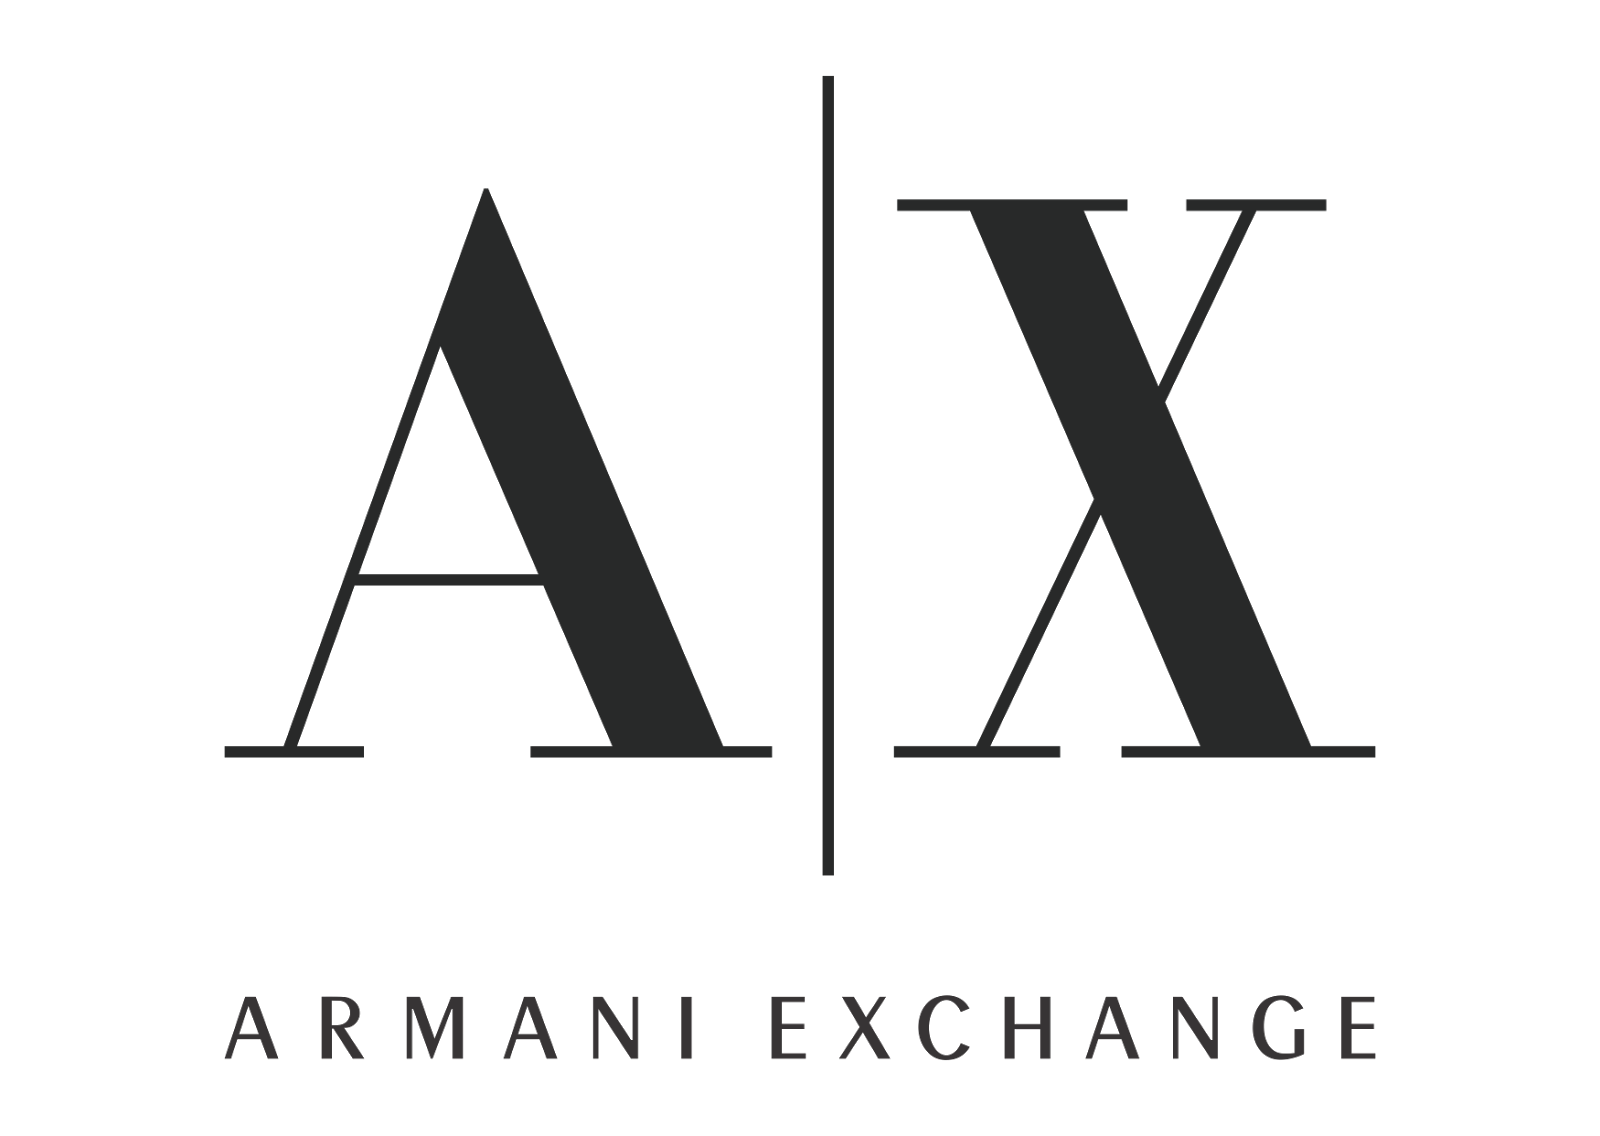 Order your original replacement Armani Exchange watch straps at Watchstraps-batteries.com